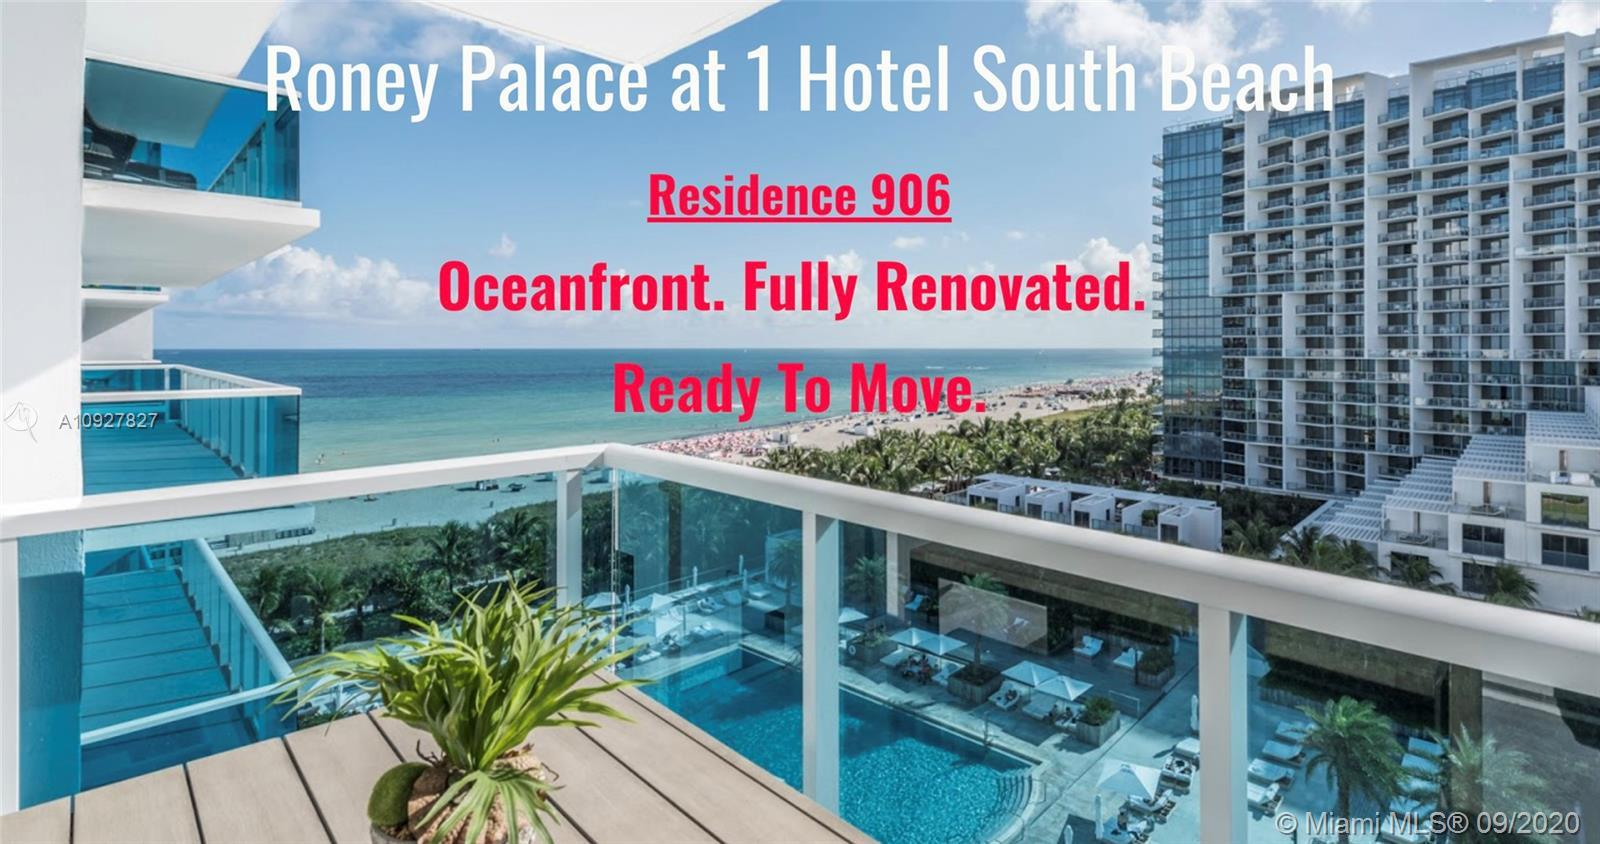 Oceanfront. Fully renovated. Move-in ready. In one of South Beach's most exclusive corners. At South